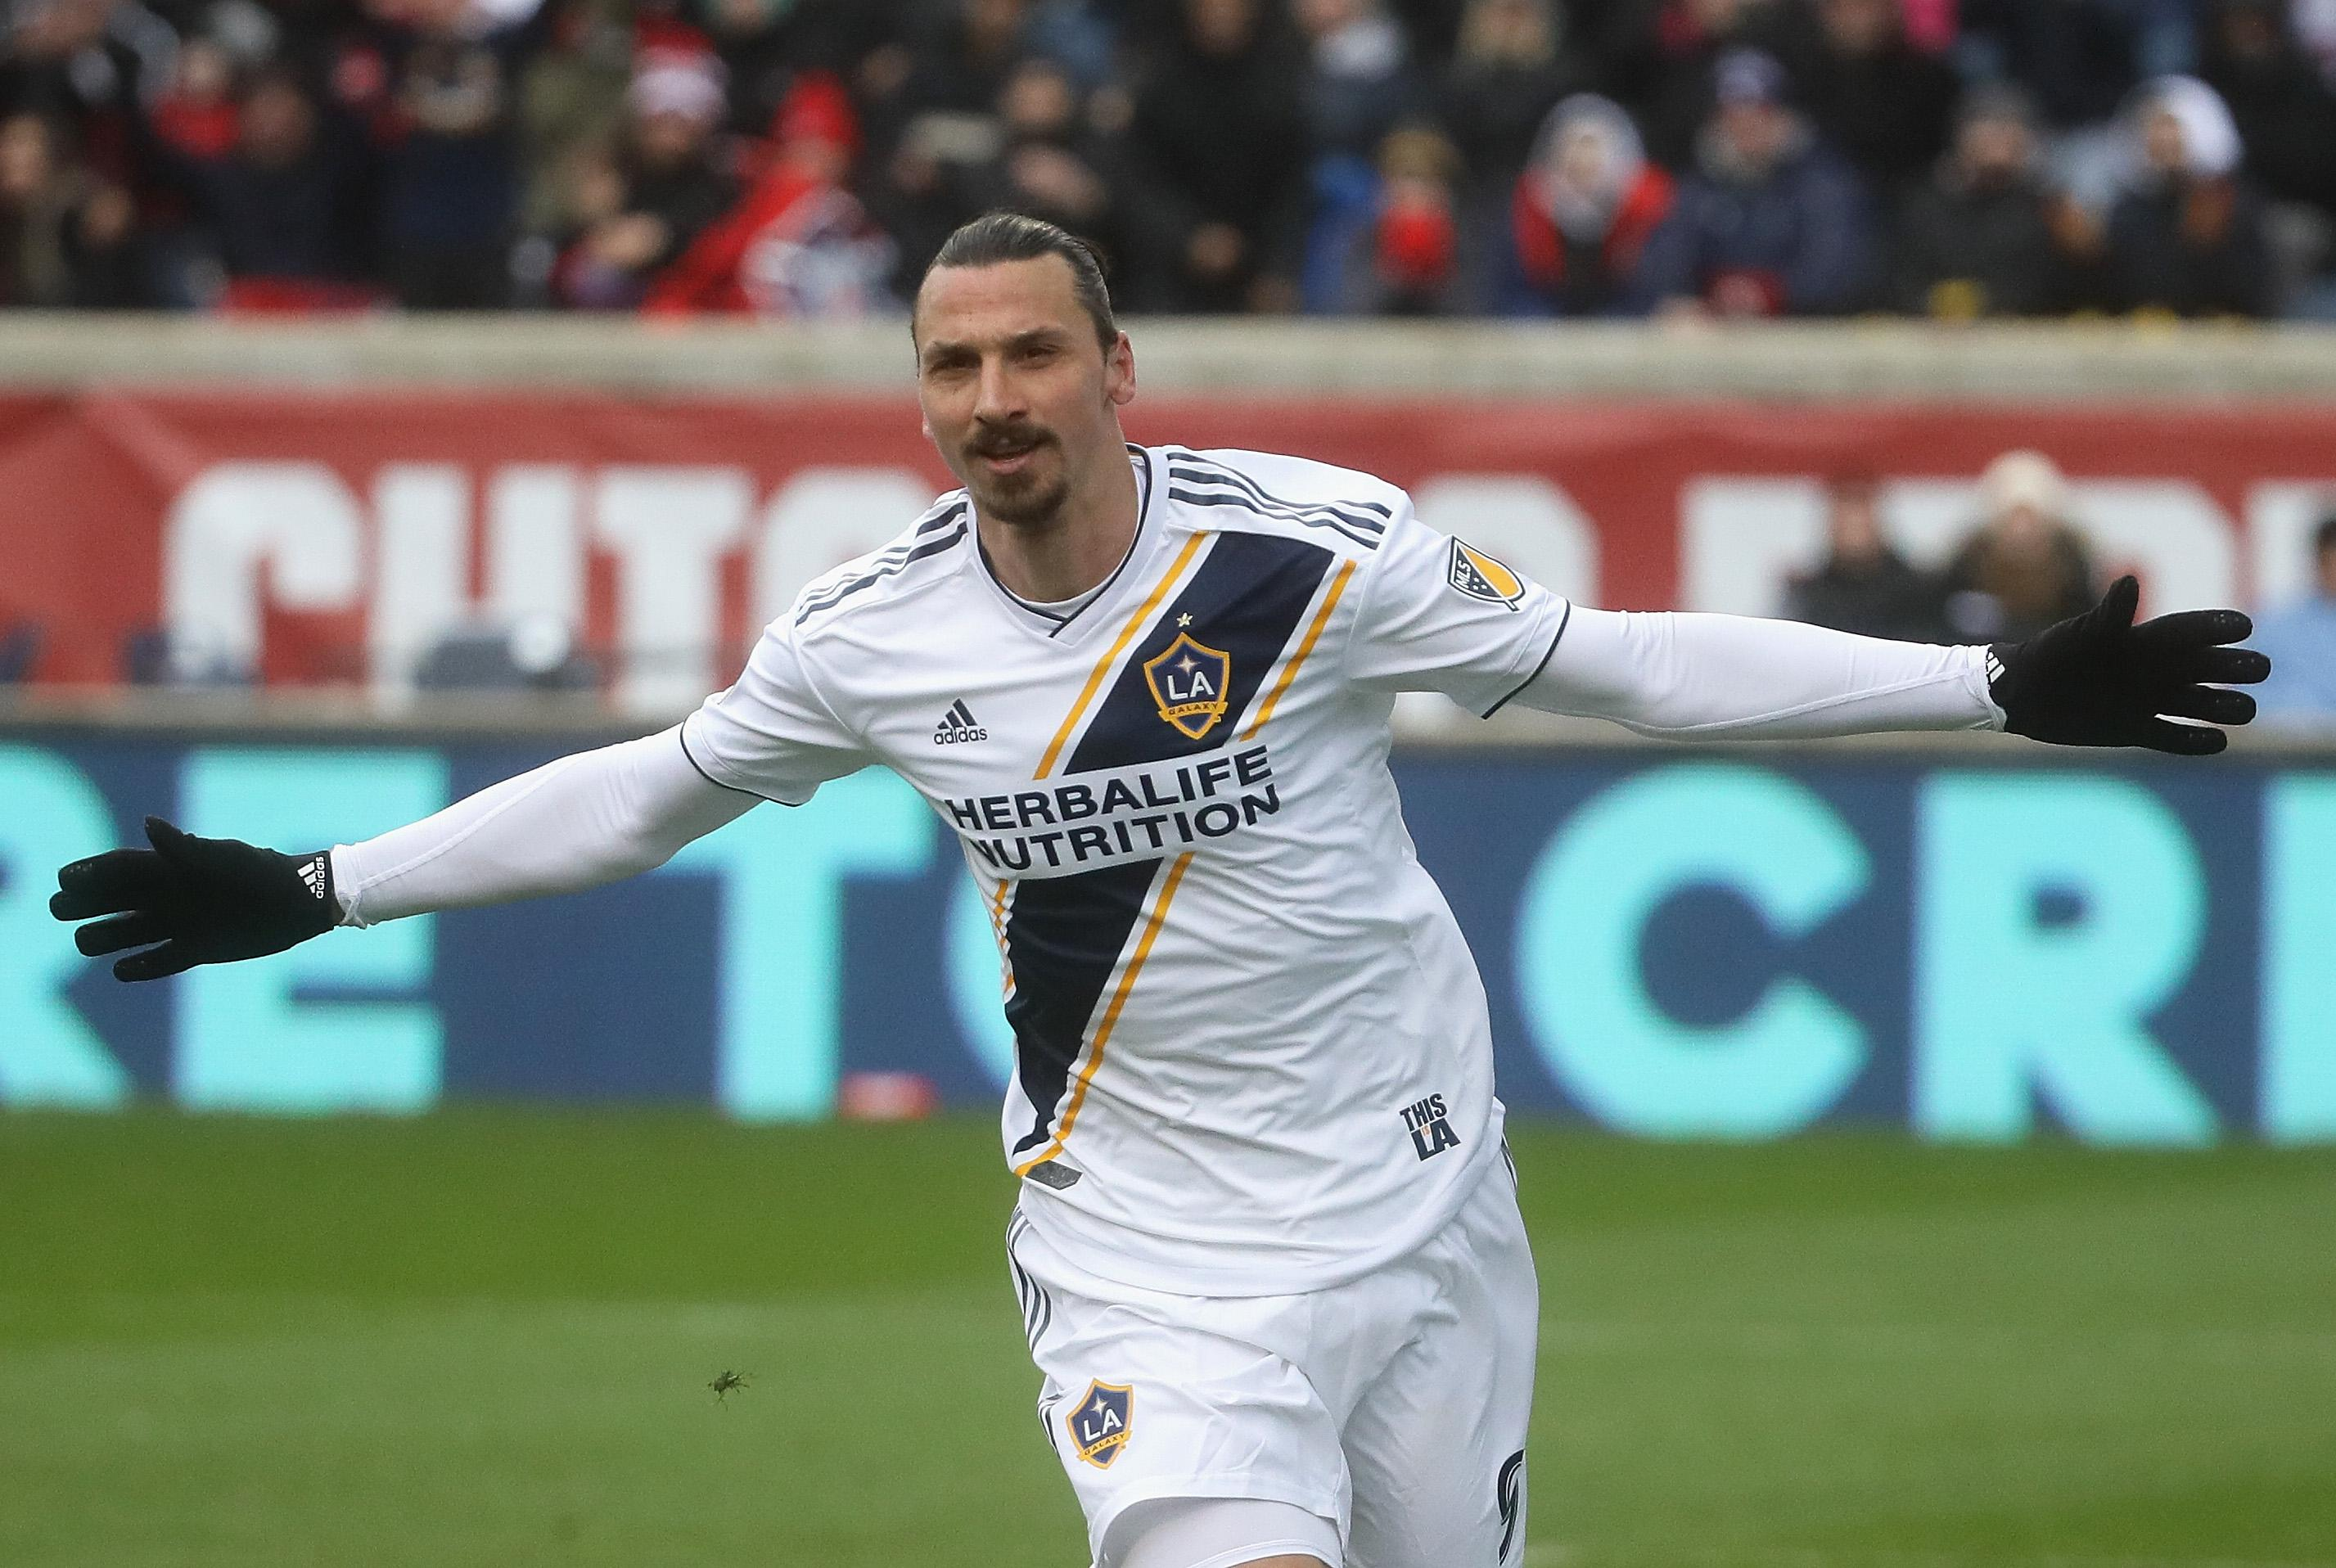 Swedish federation official says Zlatan won't make comeback